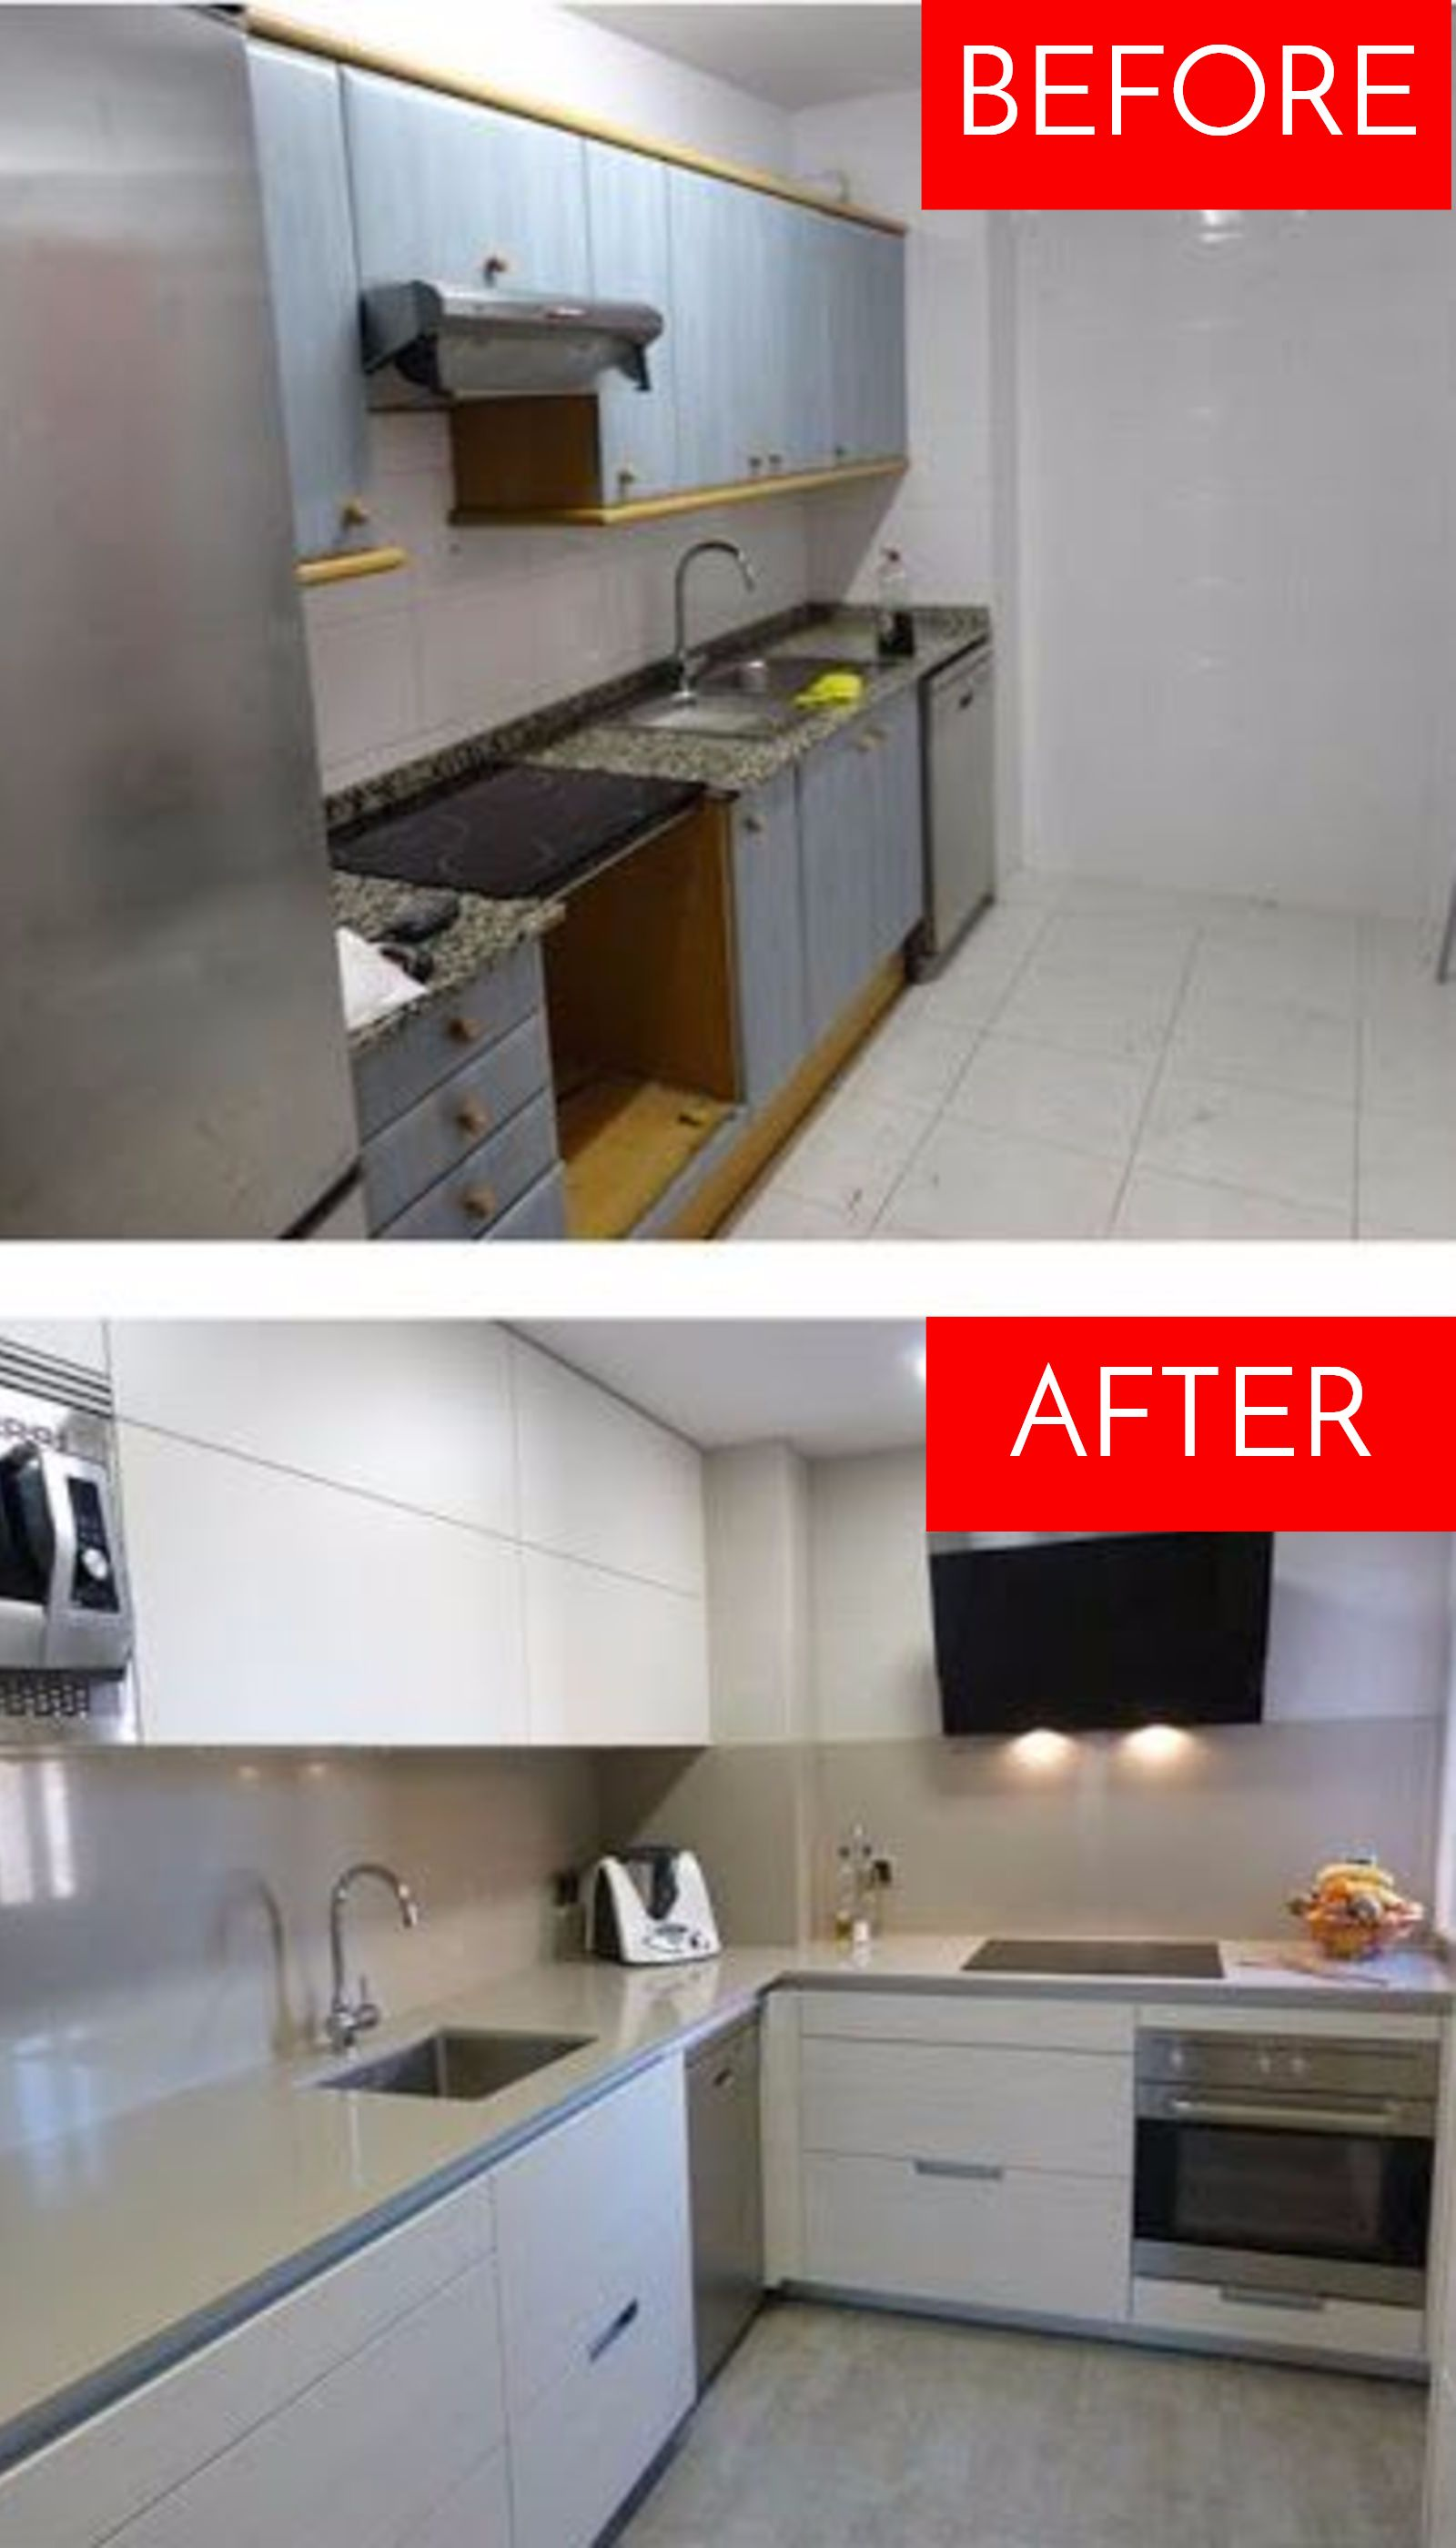 Small Kitchen Ideas On A Budget Before After Remodel Pictures Of Tiny Kitchens Clever Diy Ideas White Kitchen Remodeling Contemporary Kitchen Remodel Kitchen Remodel Cost